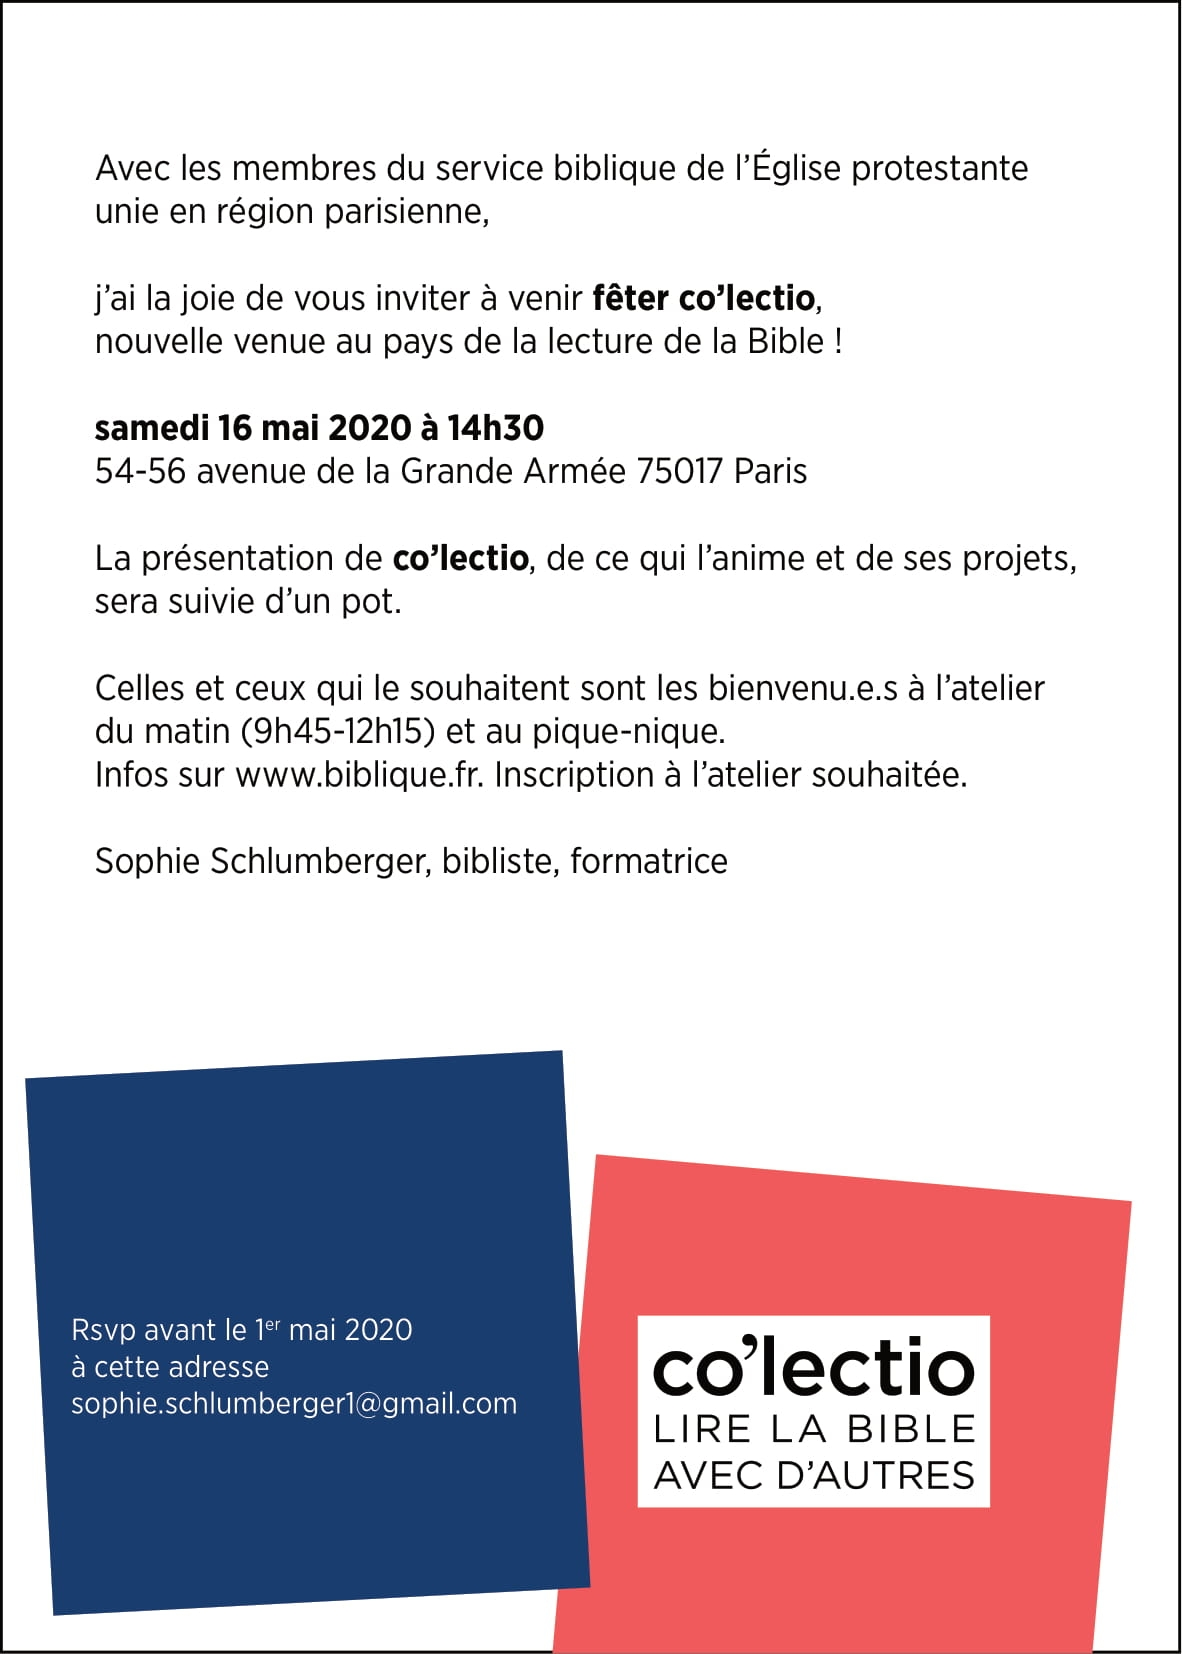 co'lectio INVITATION 16 MAI 2020-2.jpg